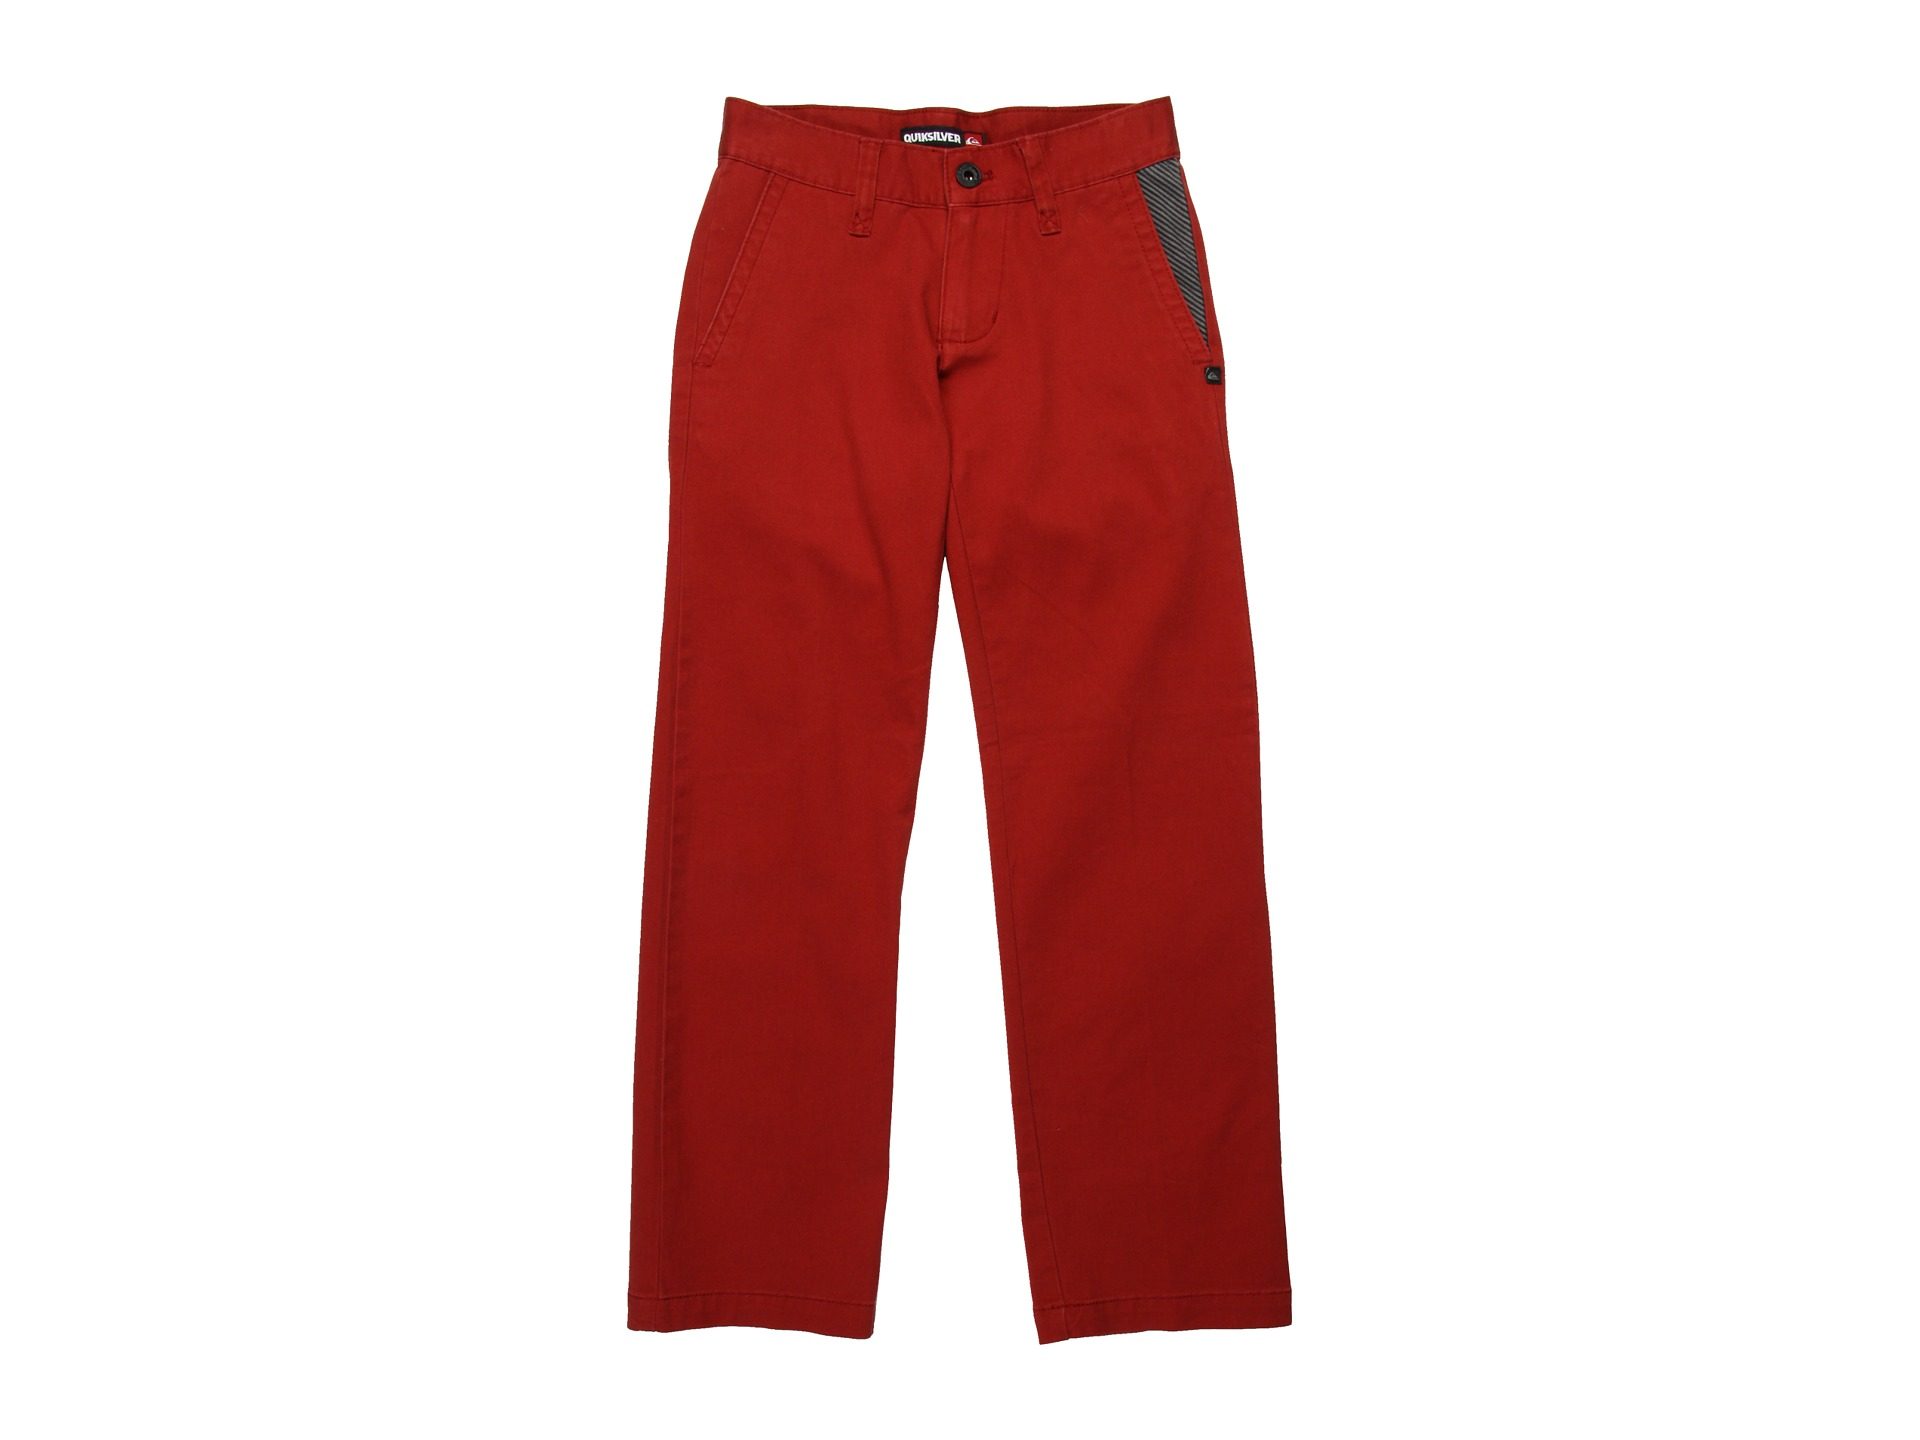 Kids Box Wire Pant (Big Kids) $21.99 (  MSRP $45.00